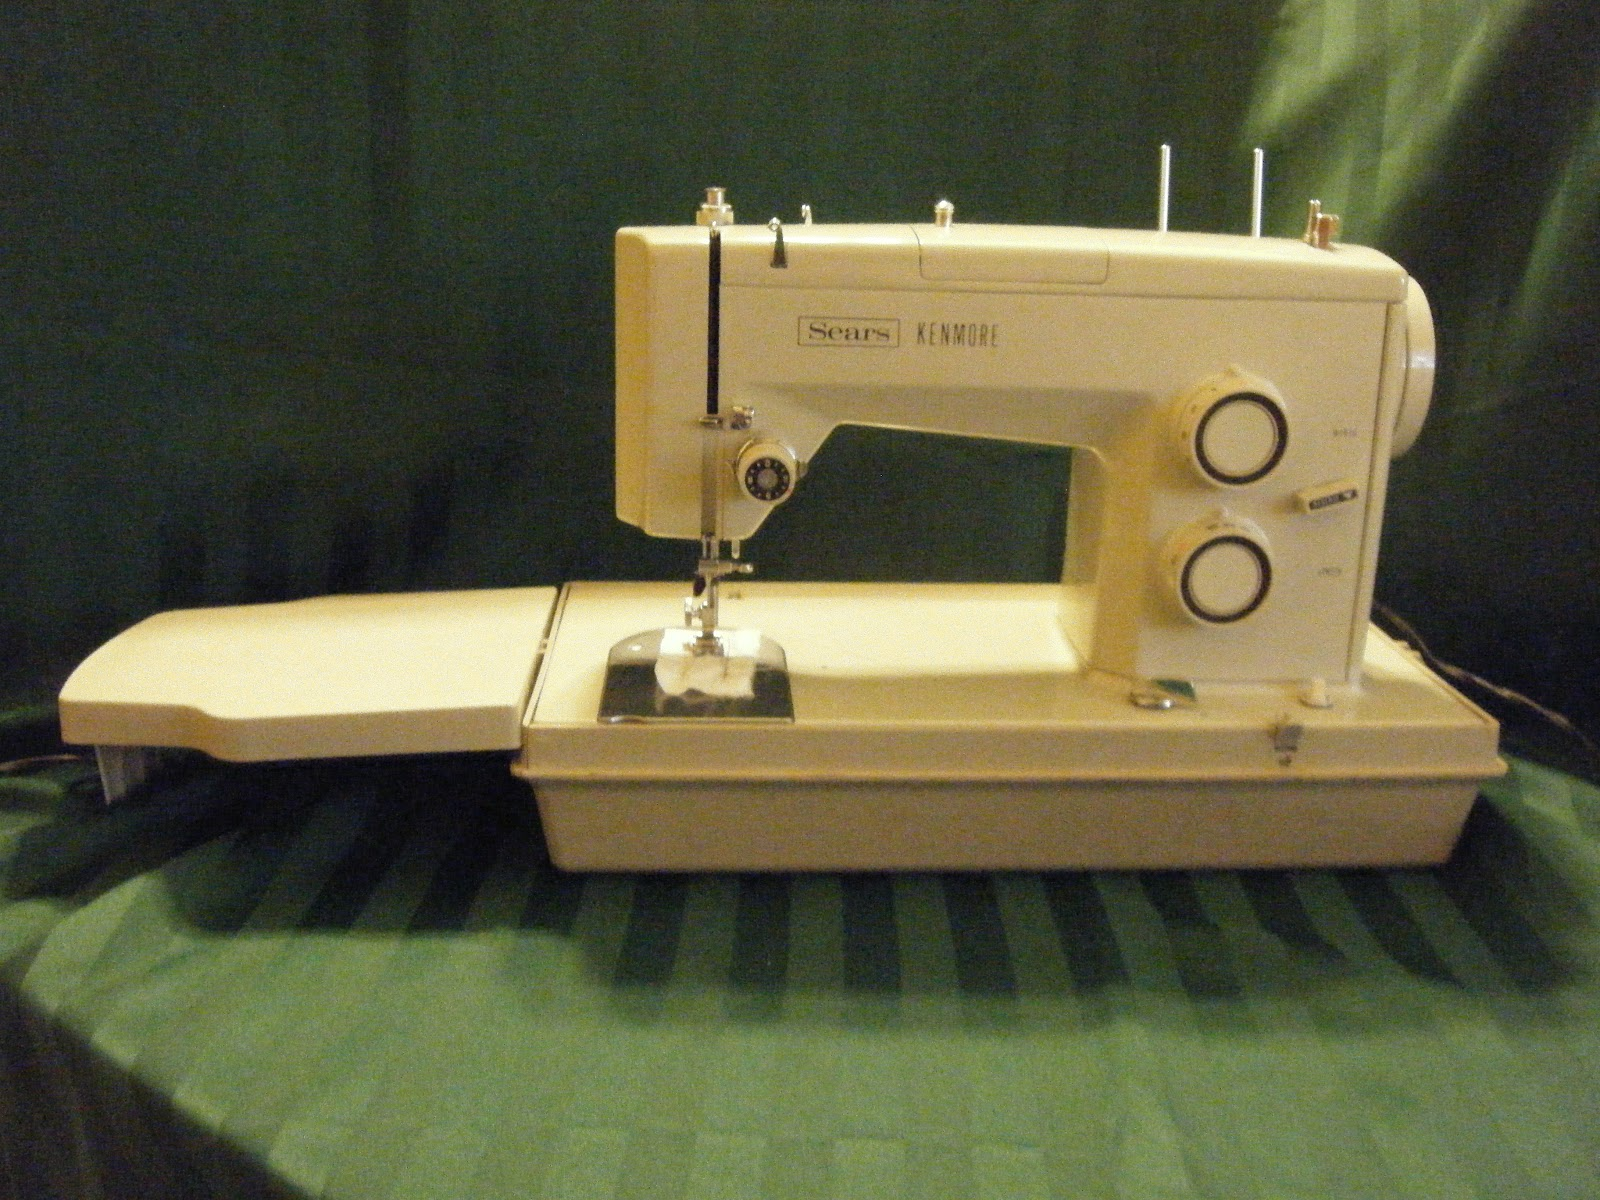 Dragonpoodle Studio Are You Looking For One Good Vintage Machine Necchi Bu Sewing Threading Diagram Kenmore 1515 With Its Extension Table